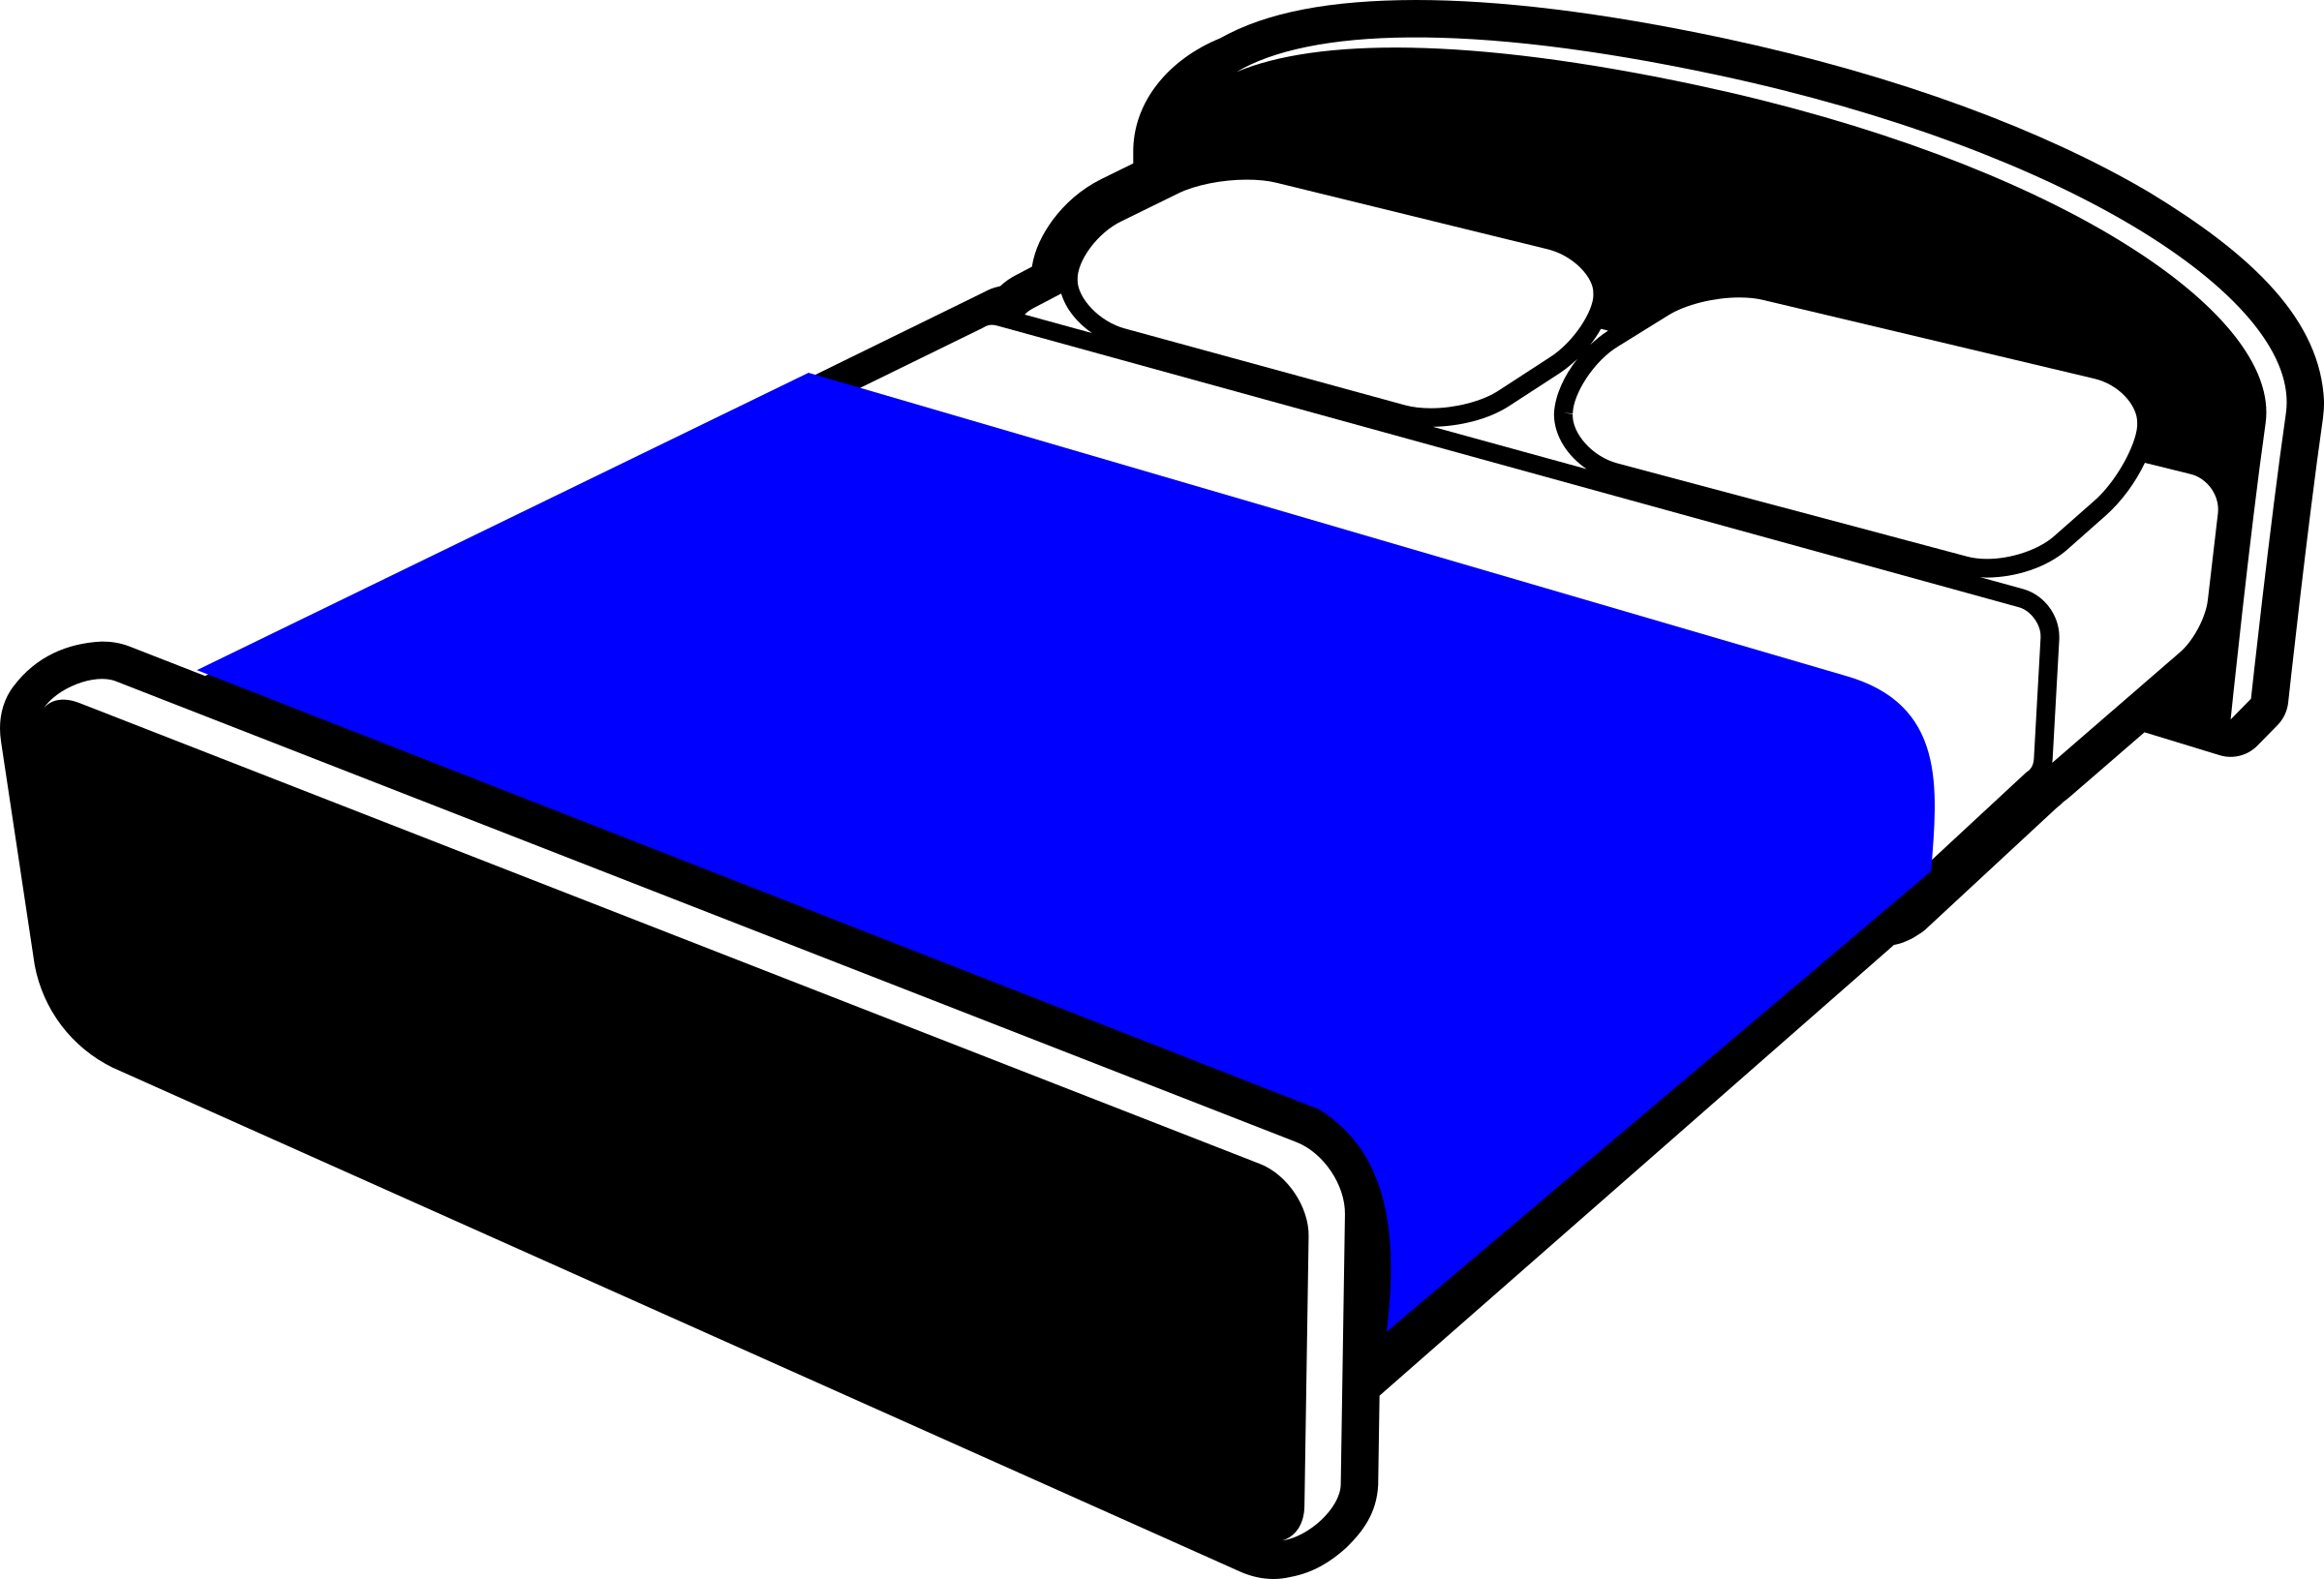 Blanket clipart icon. Bed with blue icons